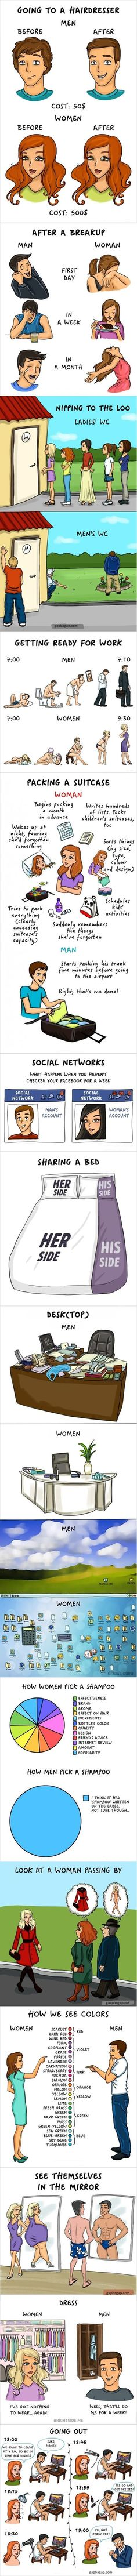 Funny Pictures Of Men vs Women